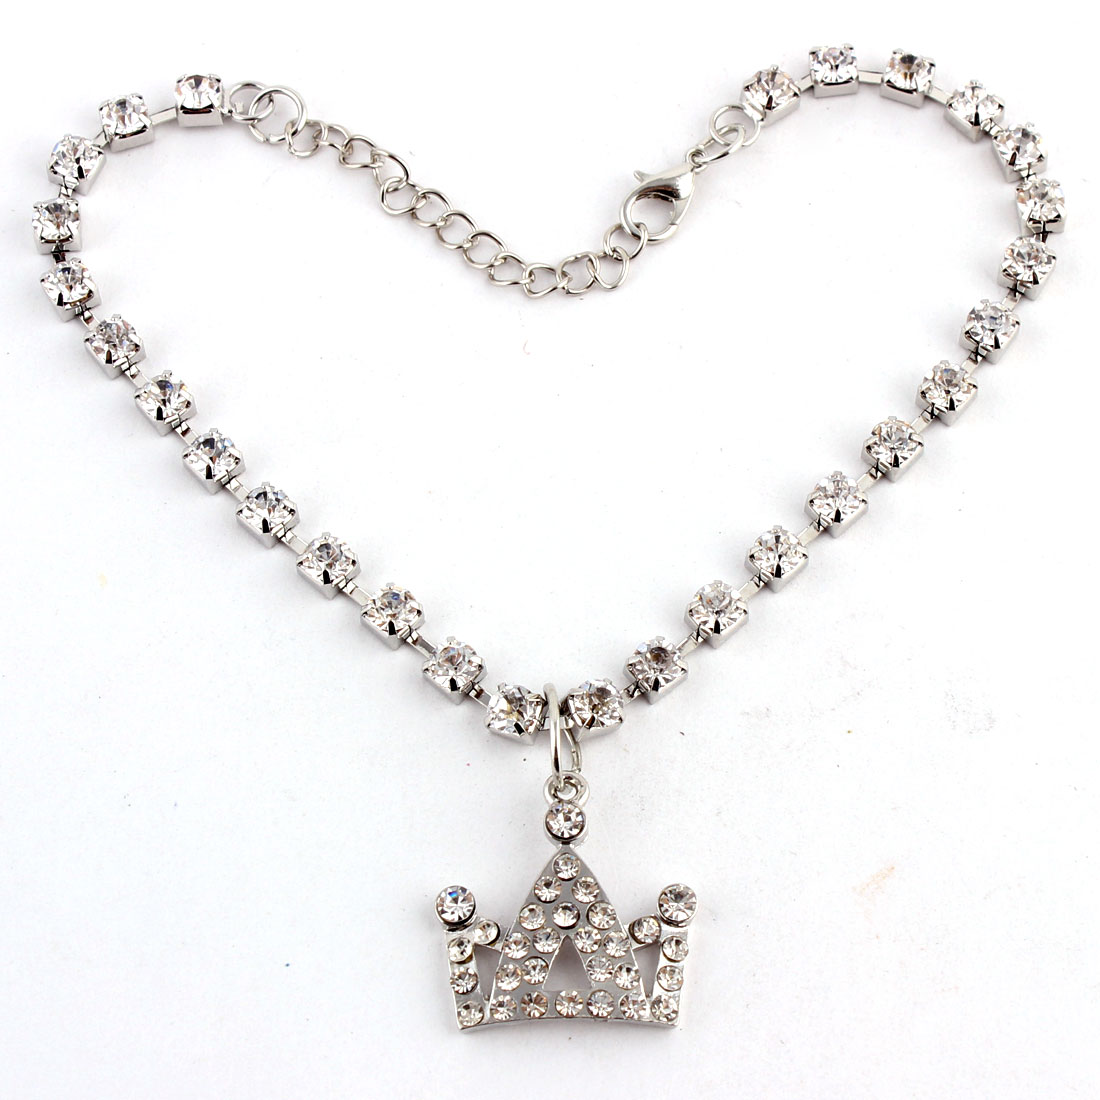 Dog Metal Beads Linked Rhinestone Inlaid Crown Shaped Pendant Decor Necklace White